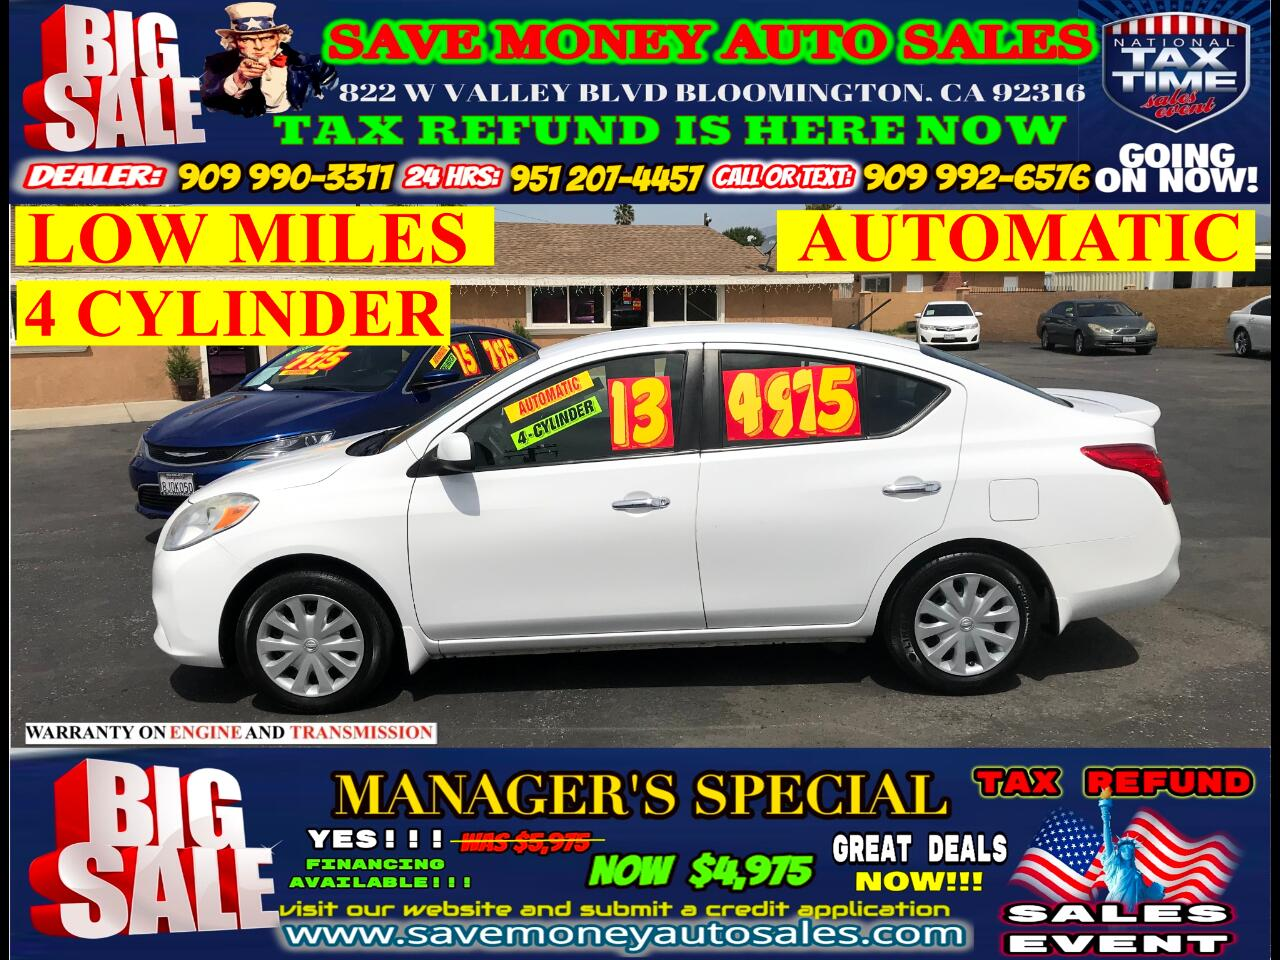 2013 Nissan Versa SV 1.6L> 4 CYLINDER> AUTOMATIC> EXTRA CLEAN